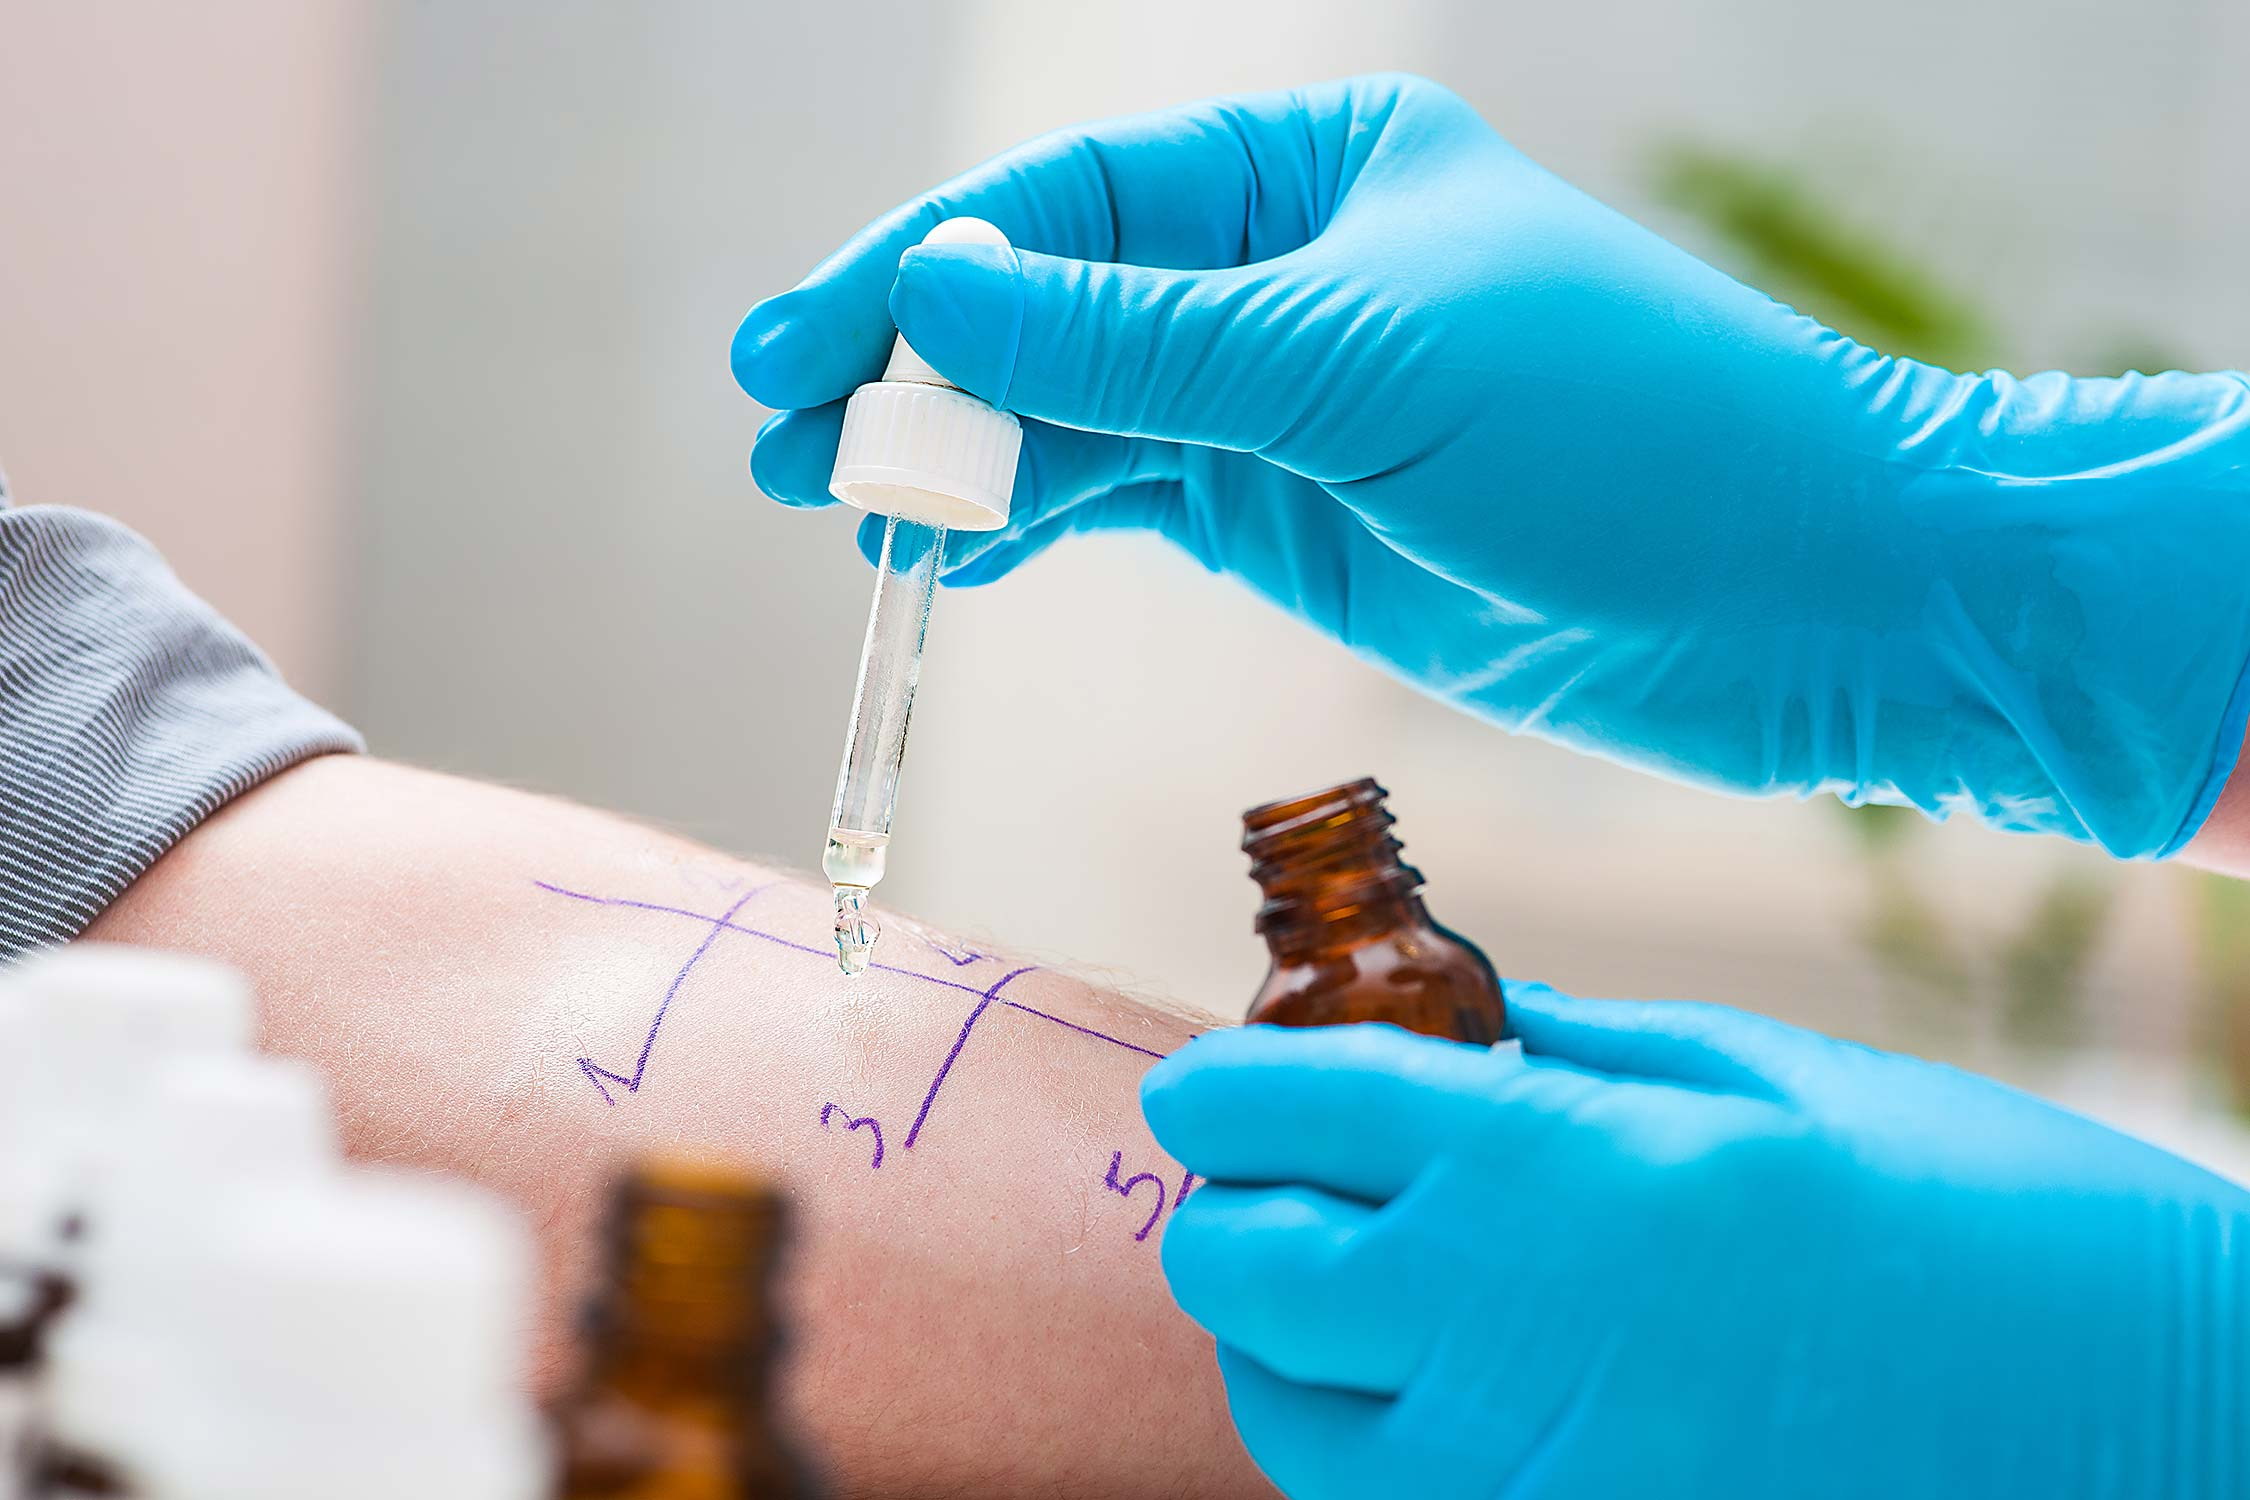 Applying contact allergen drops to forearm test area